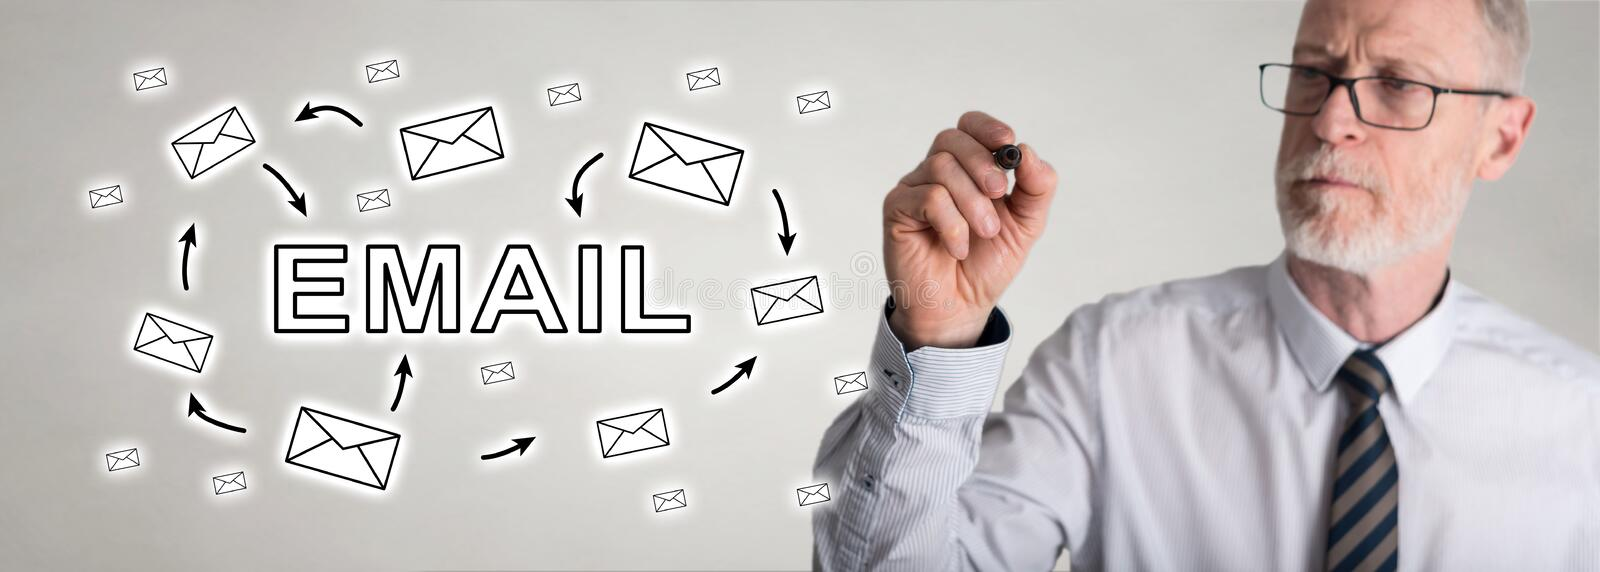 Businessman drawing email concept stock photos